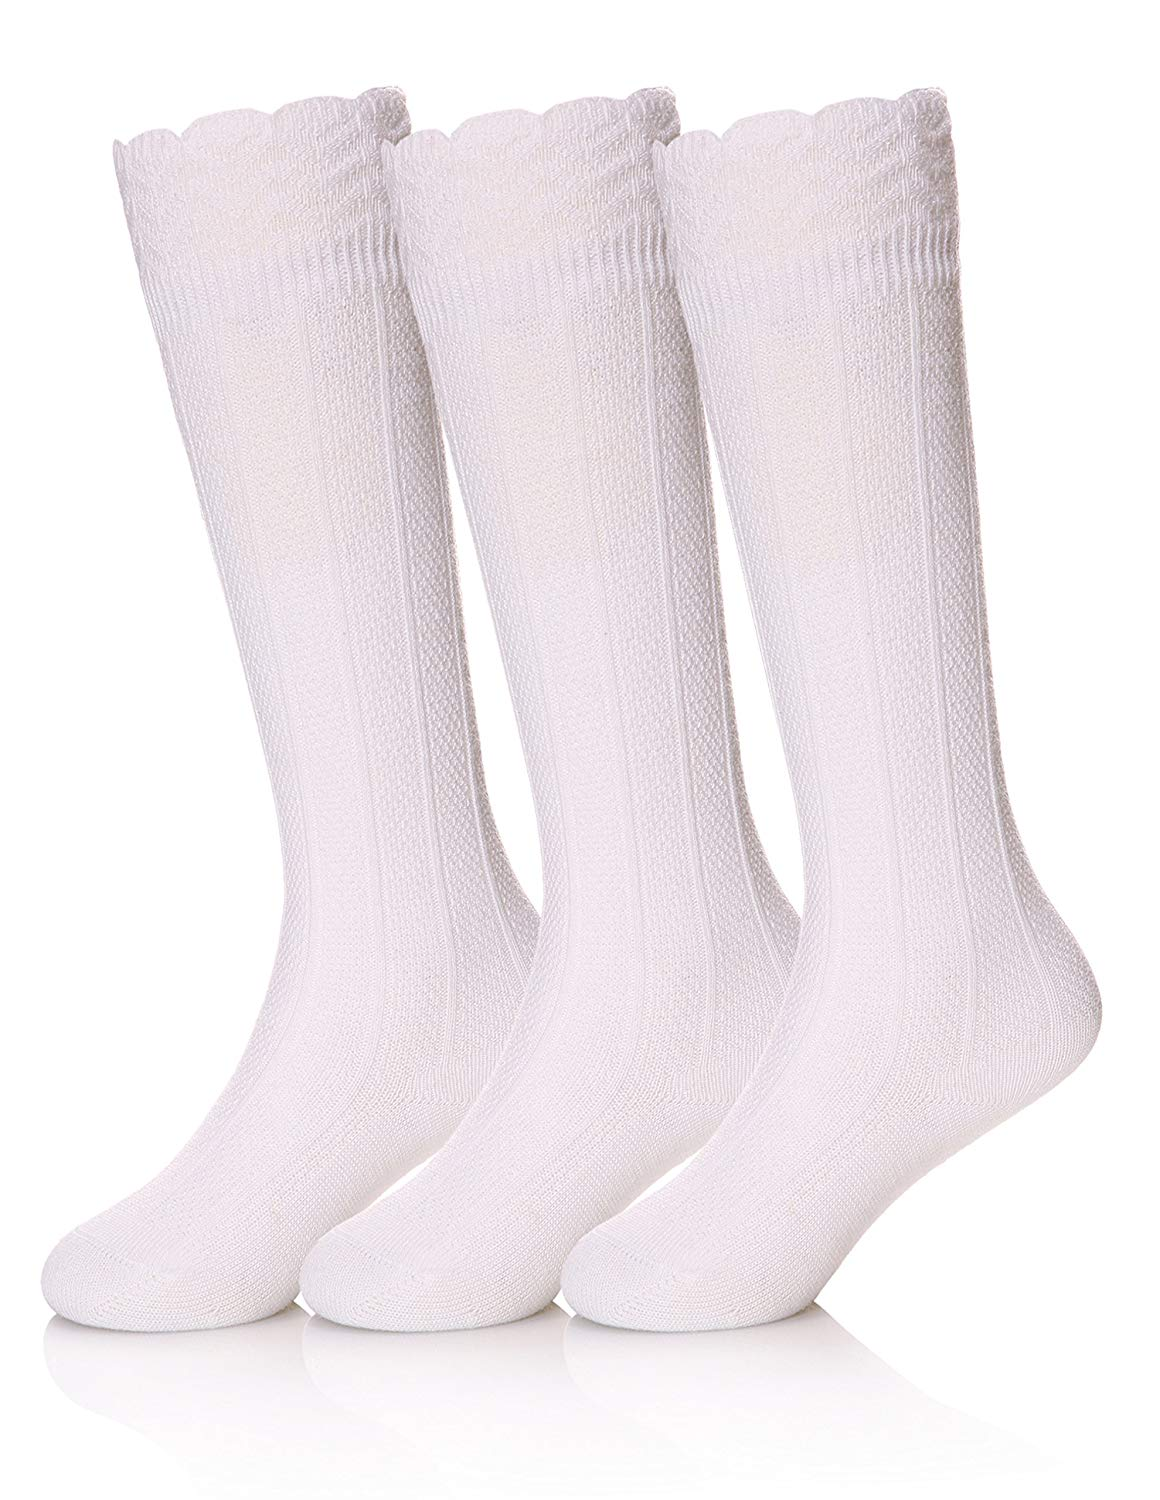 6c17f2171 Get Quotations · SEEYAN Baby Girls Boys Knee High Cotton Socks Kids Toddler  Cable Knit Breathable Stockings